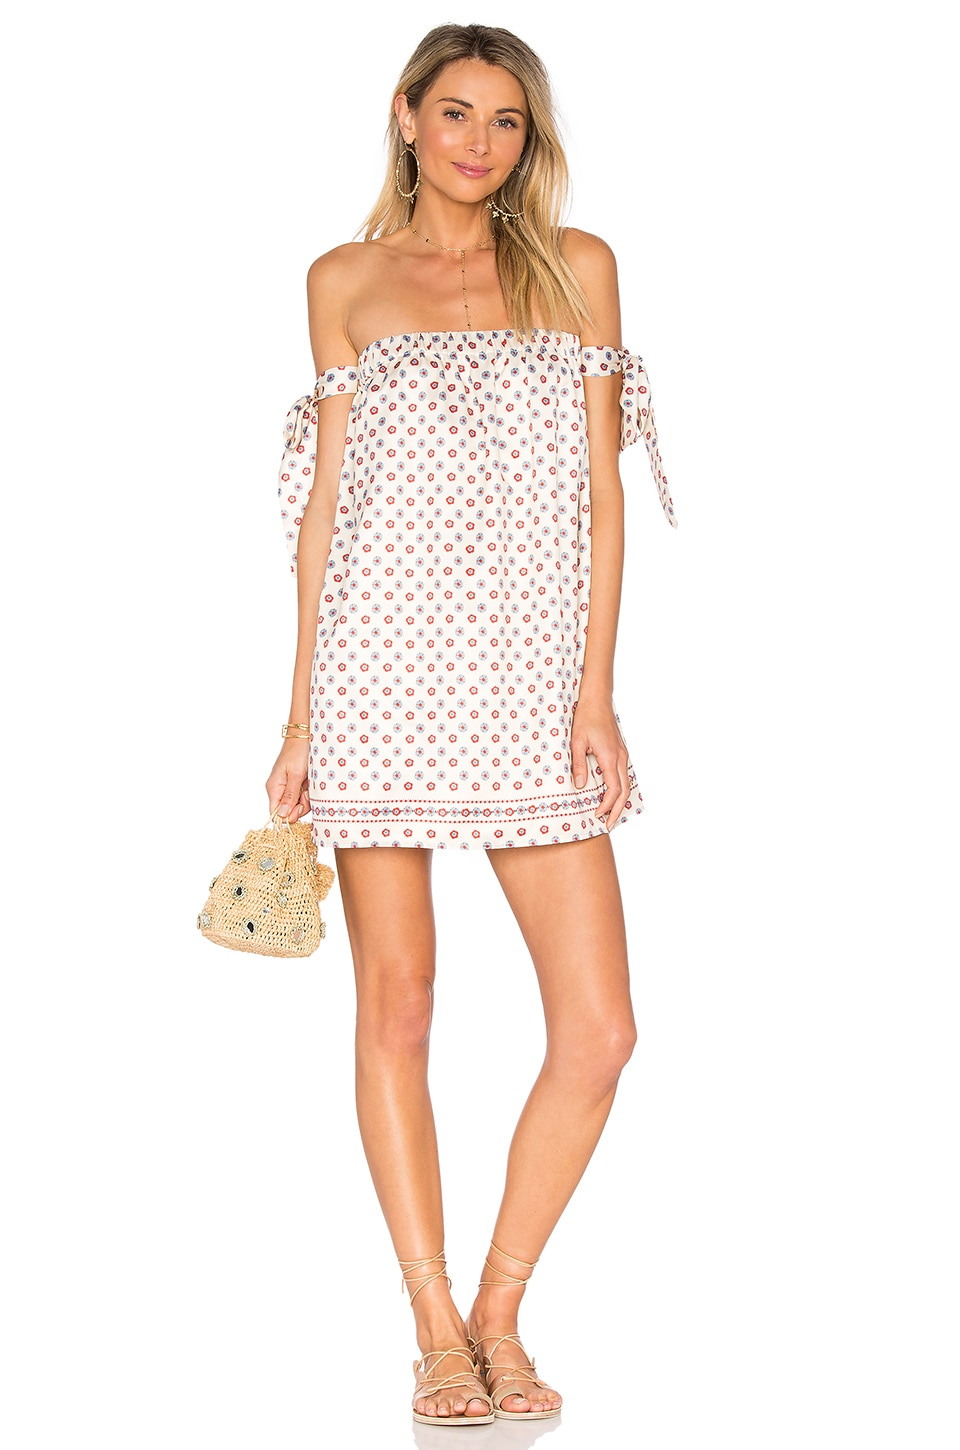 Tularosa Perry Dress in Polka Dot Scarf